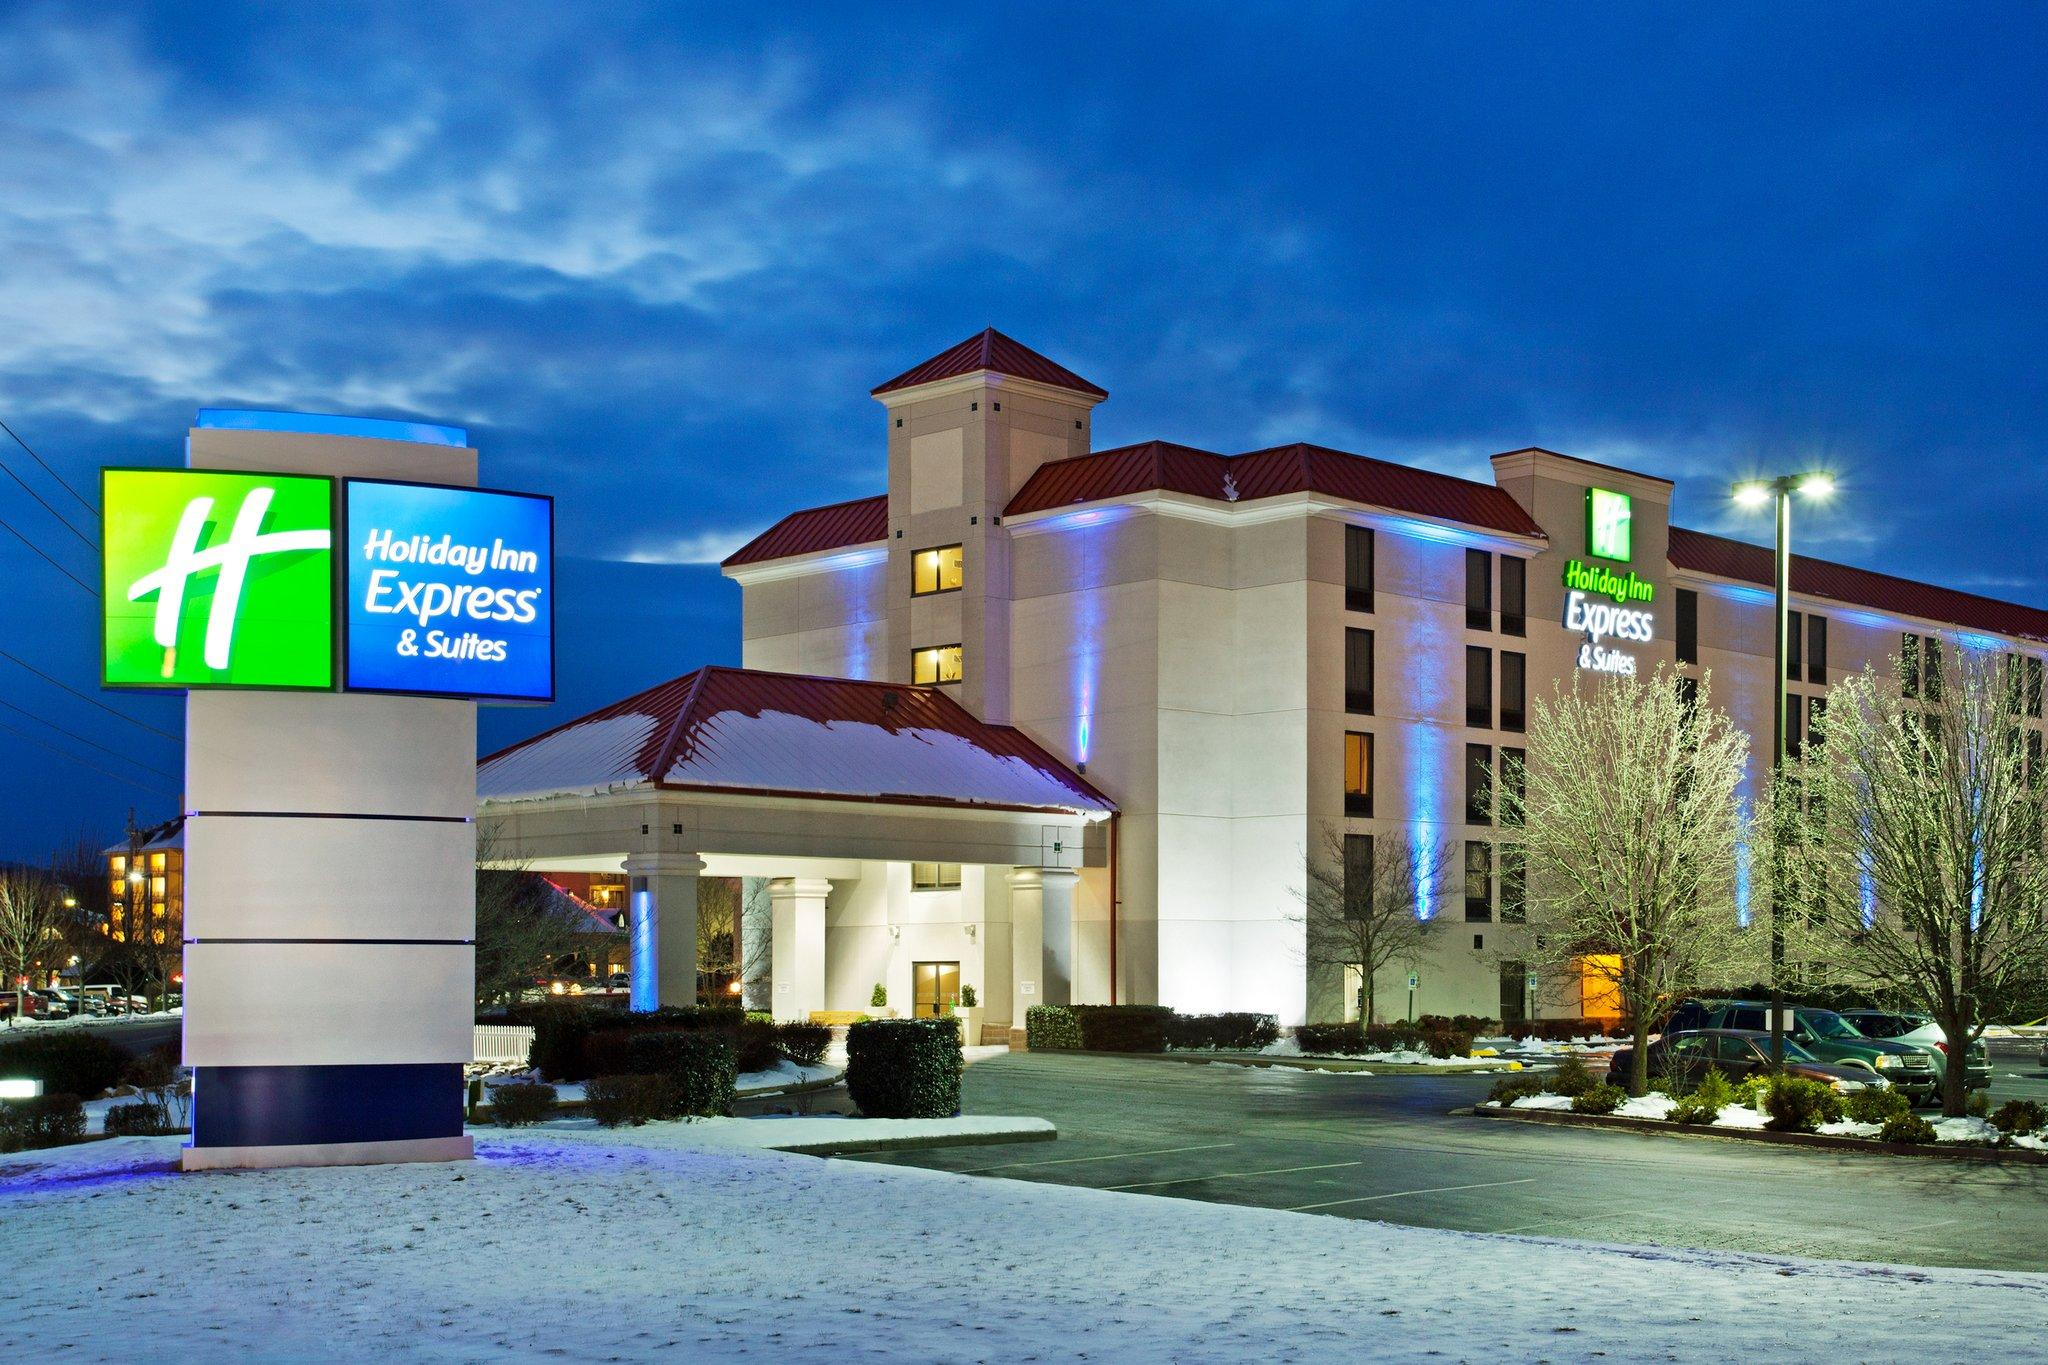 Holiday Inn Express Pigeon Forge/Dollywood